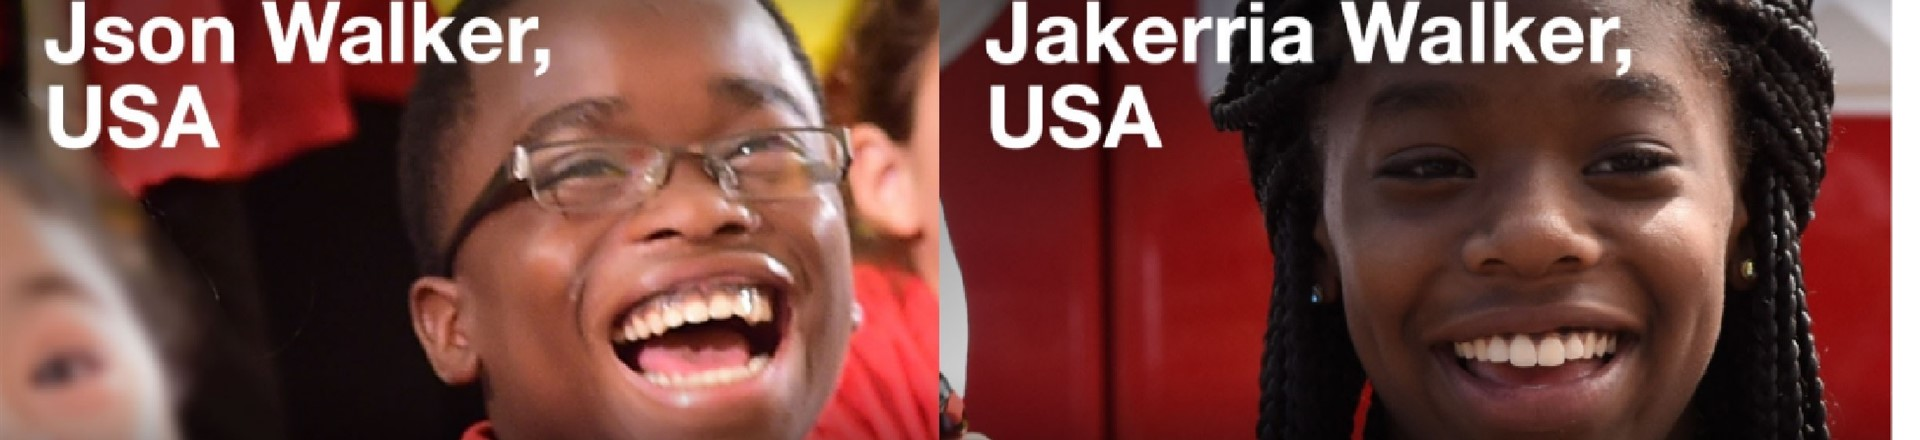 Our Olympic Kids - J'son & Jakerria participated in Opening Ceremonies Rio 2016